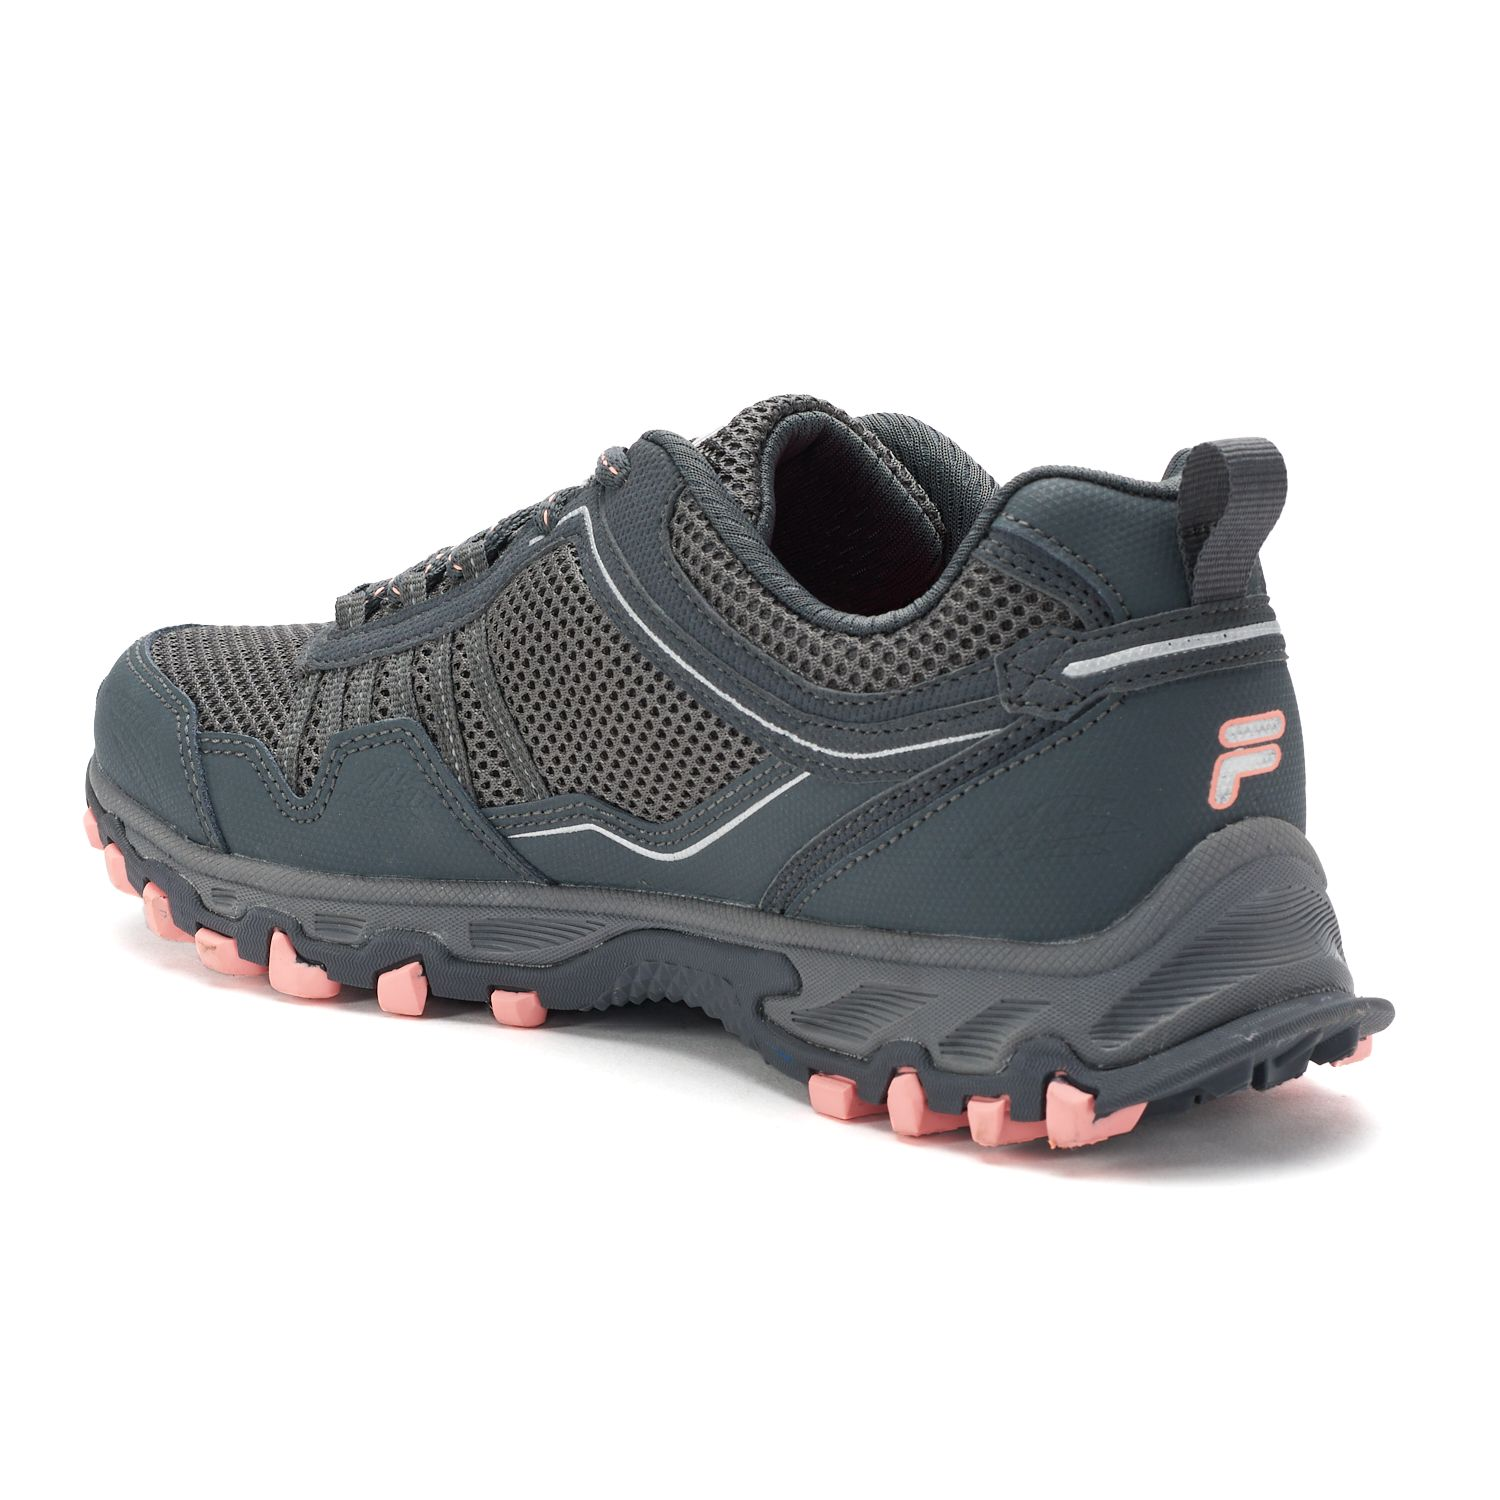 917eafdc4d98 Womens FILA Memory Foam Athletic Shoes   Sneakers - Shoes